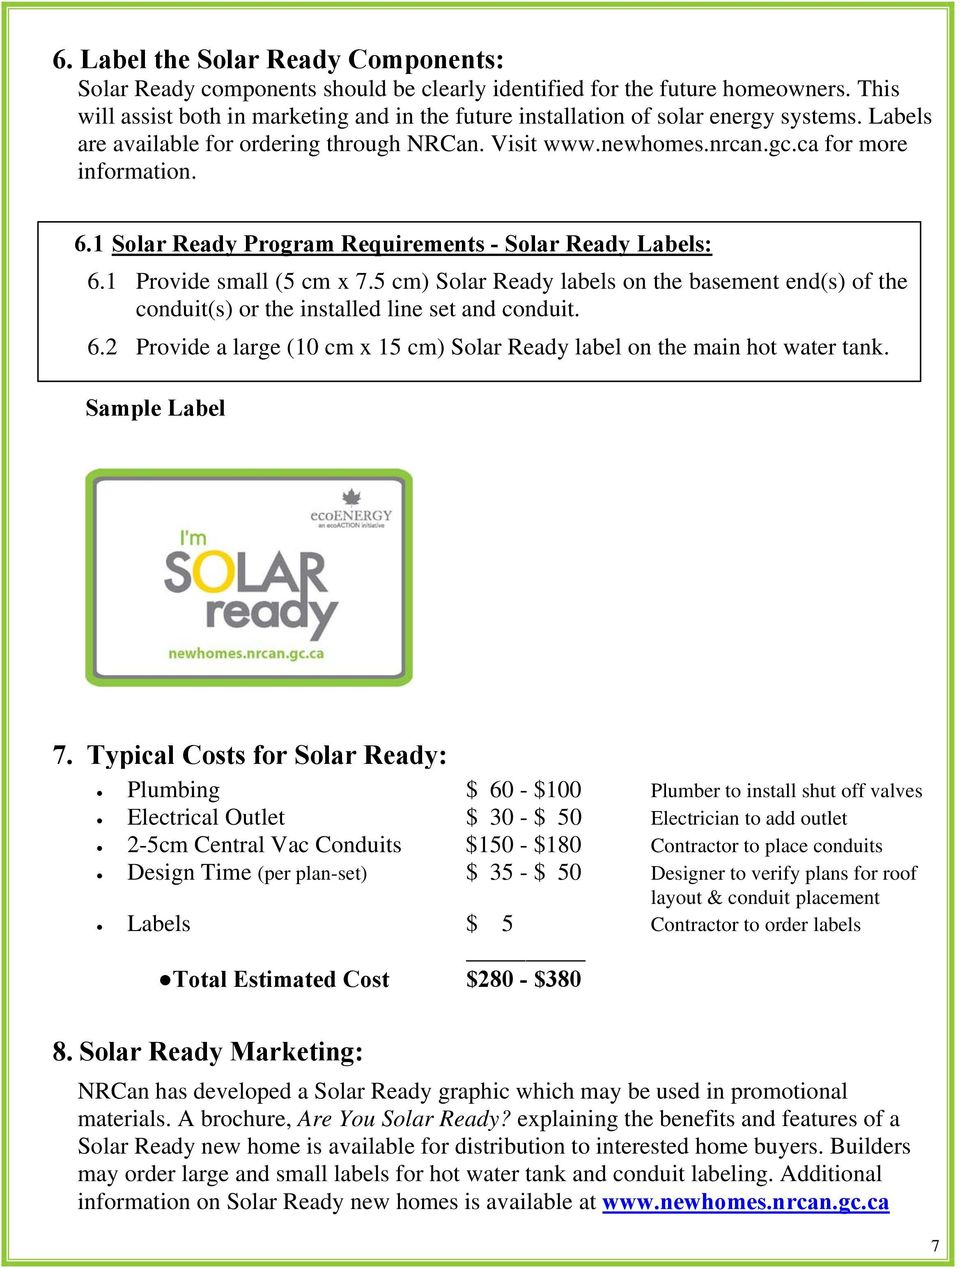 1 Solar Ready Program Requirements - Solar Ready Labels: 6.1 Provide small (5 cm x 7.5 cm) Solar Ready labels on the basement end(s) of the conduit(s) or the installed line set and conduit. 6.2 Provide a large (10 cm x 15 cm) Solar Ready label on the main hot water tank.